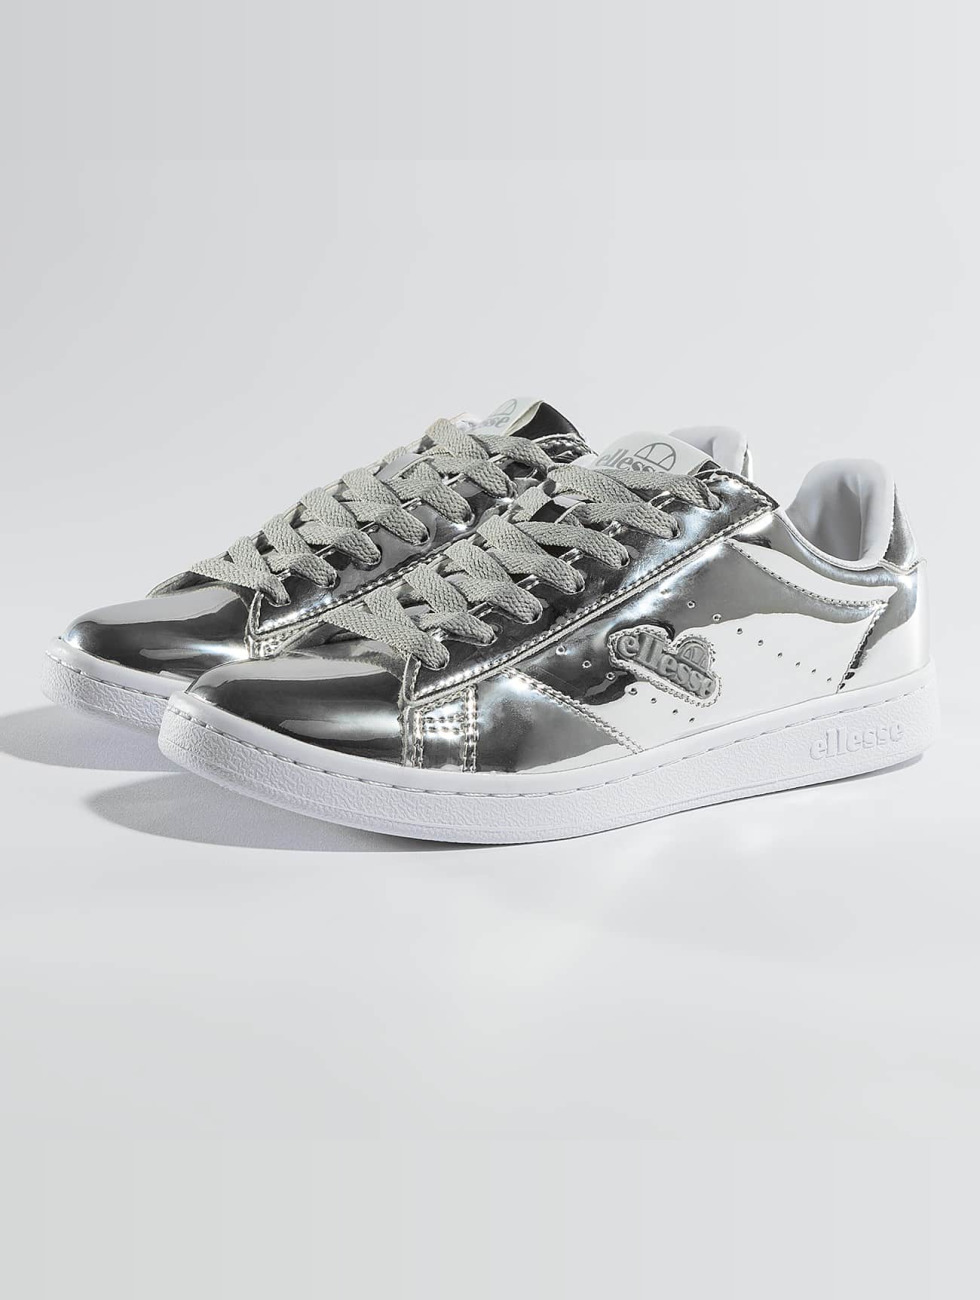 Ellesse Sneakers Heritage Anzia Metallic silver colored